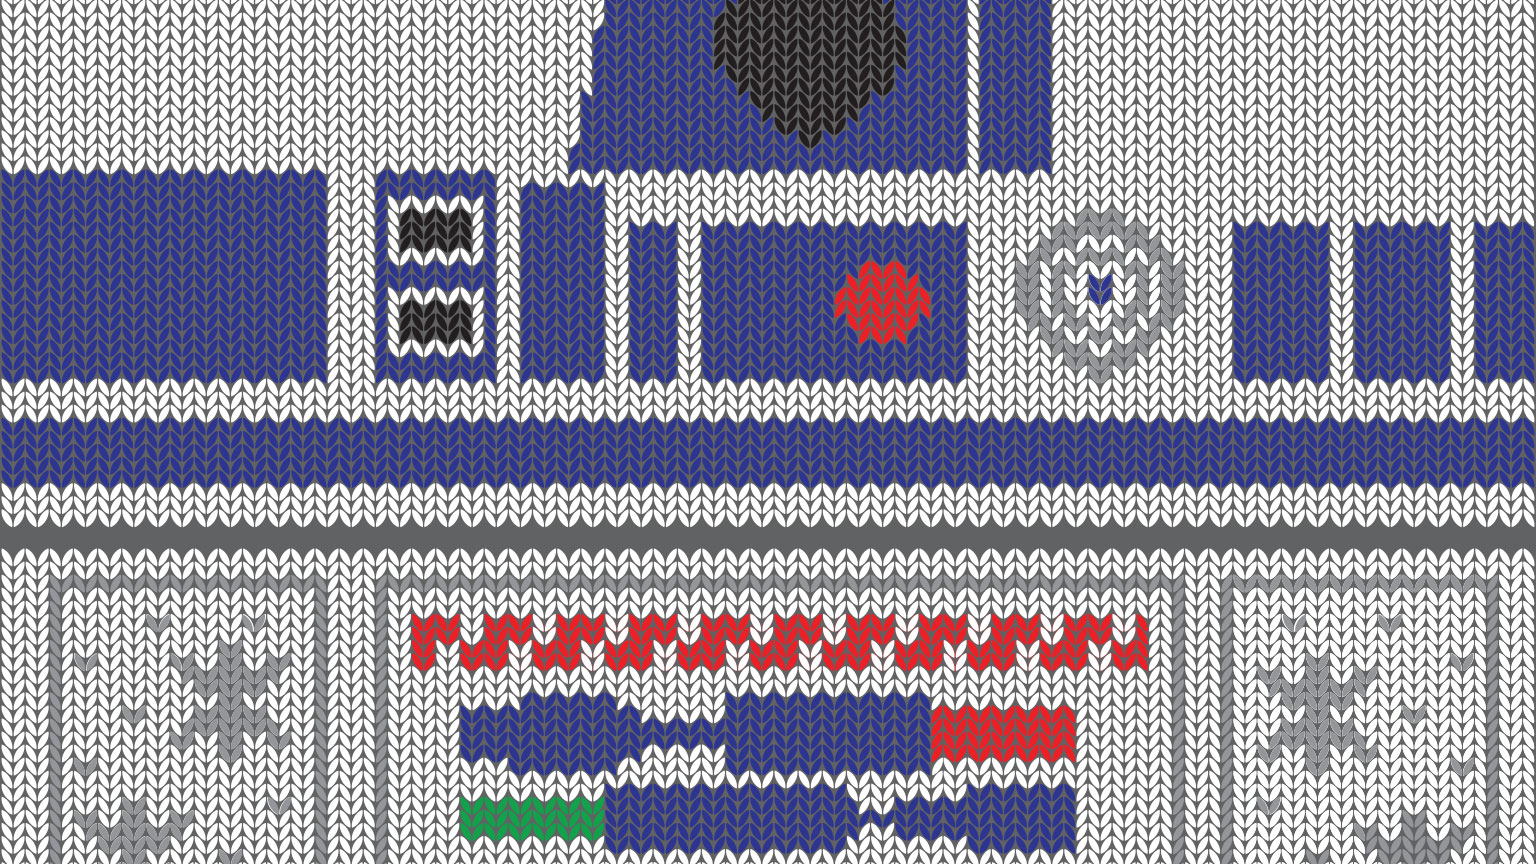 Ugly sweater Artoo wished you happy holidays!